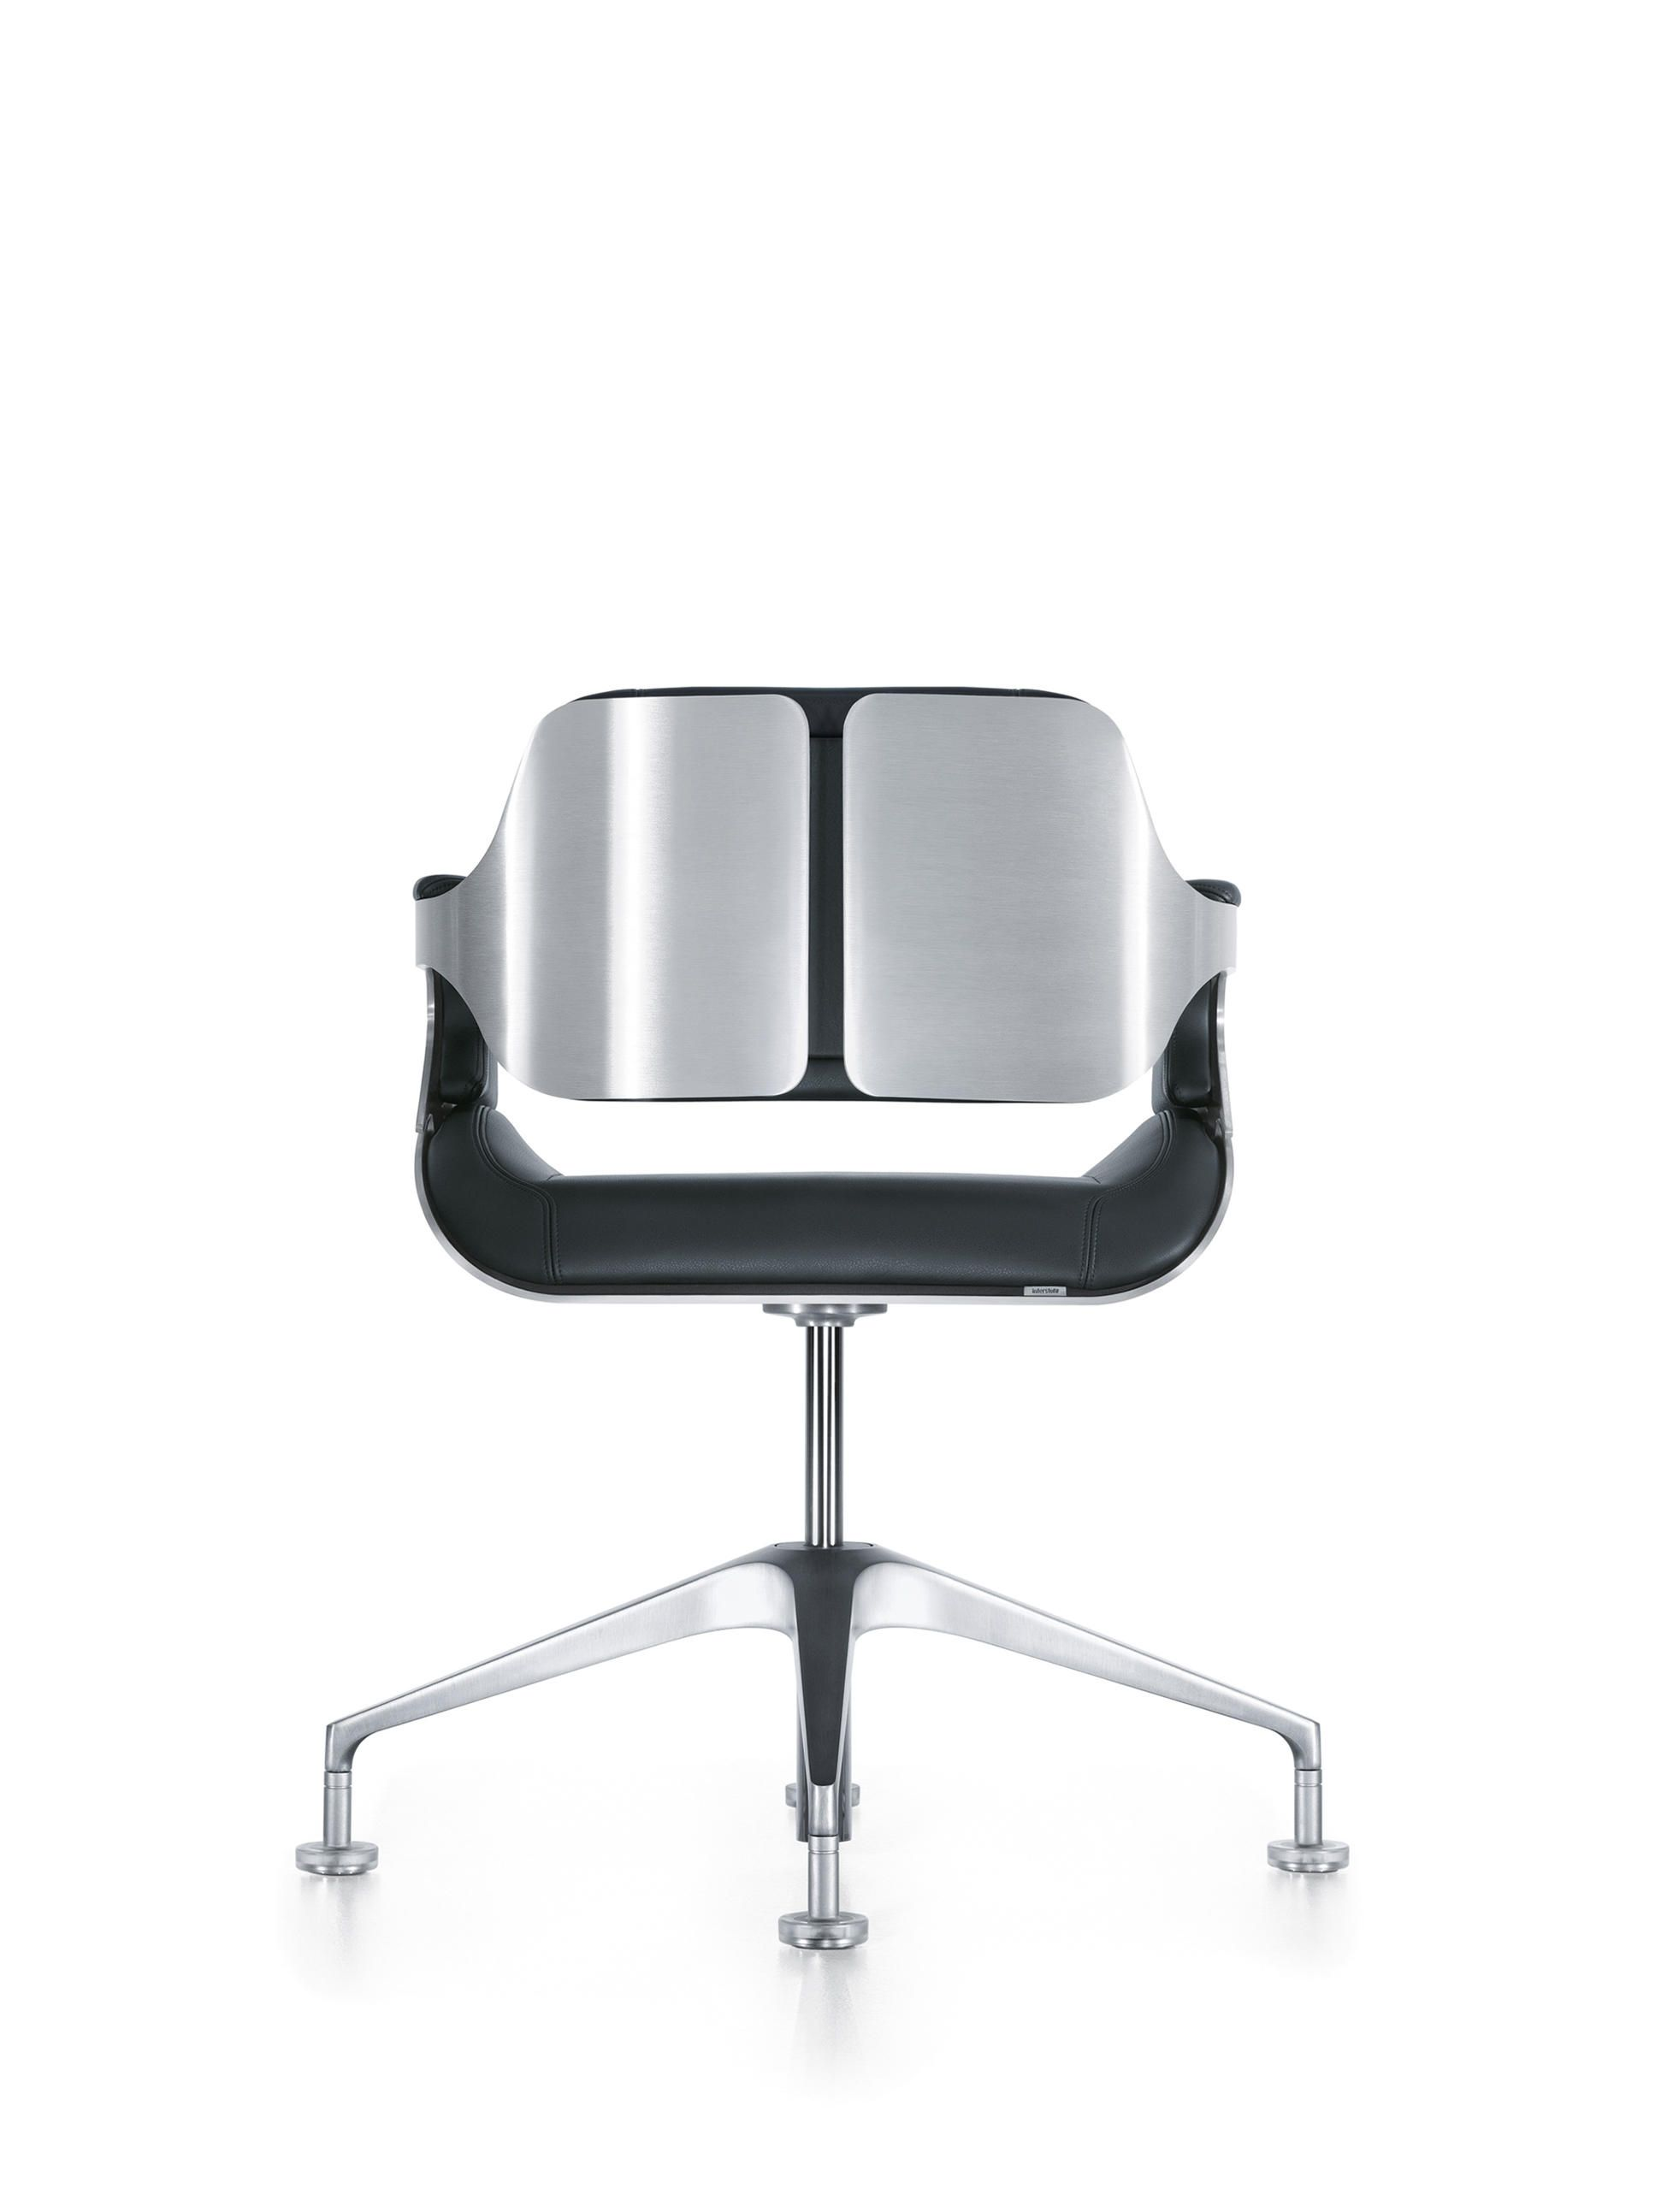 SILVER 101S - Conference chairs from Interstuhl Büromöbel GmbH & Co ...